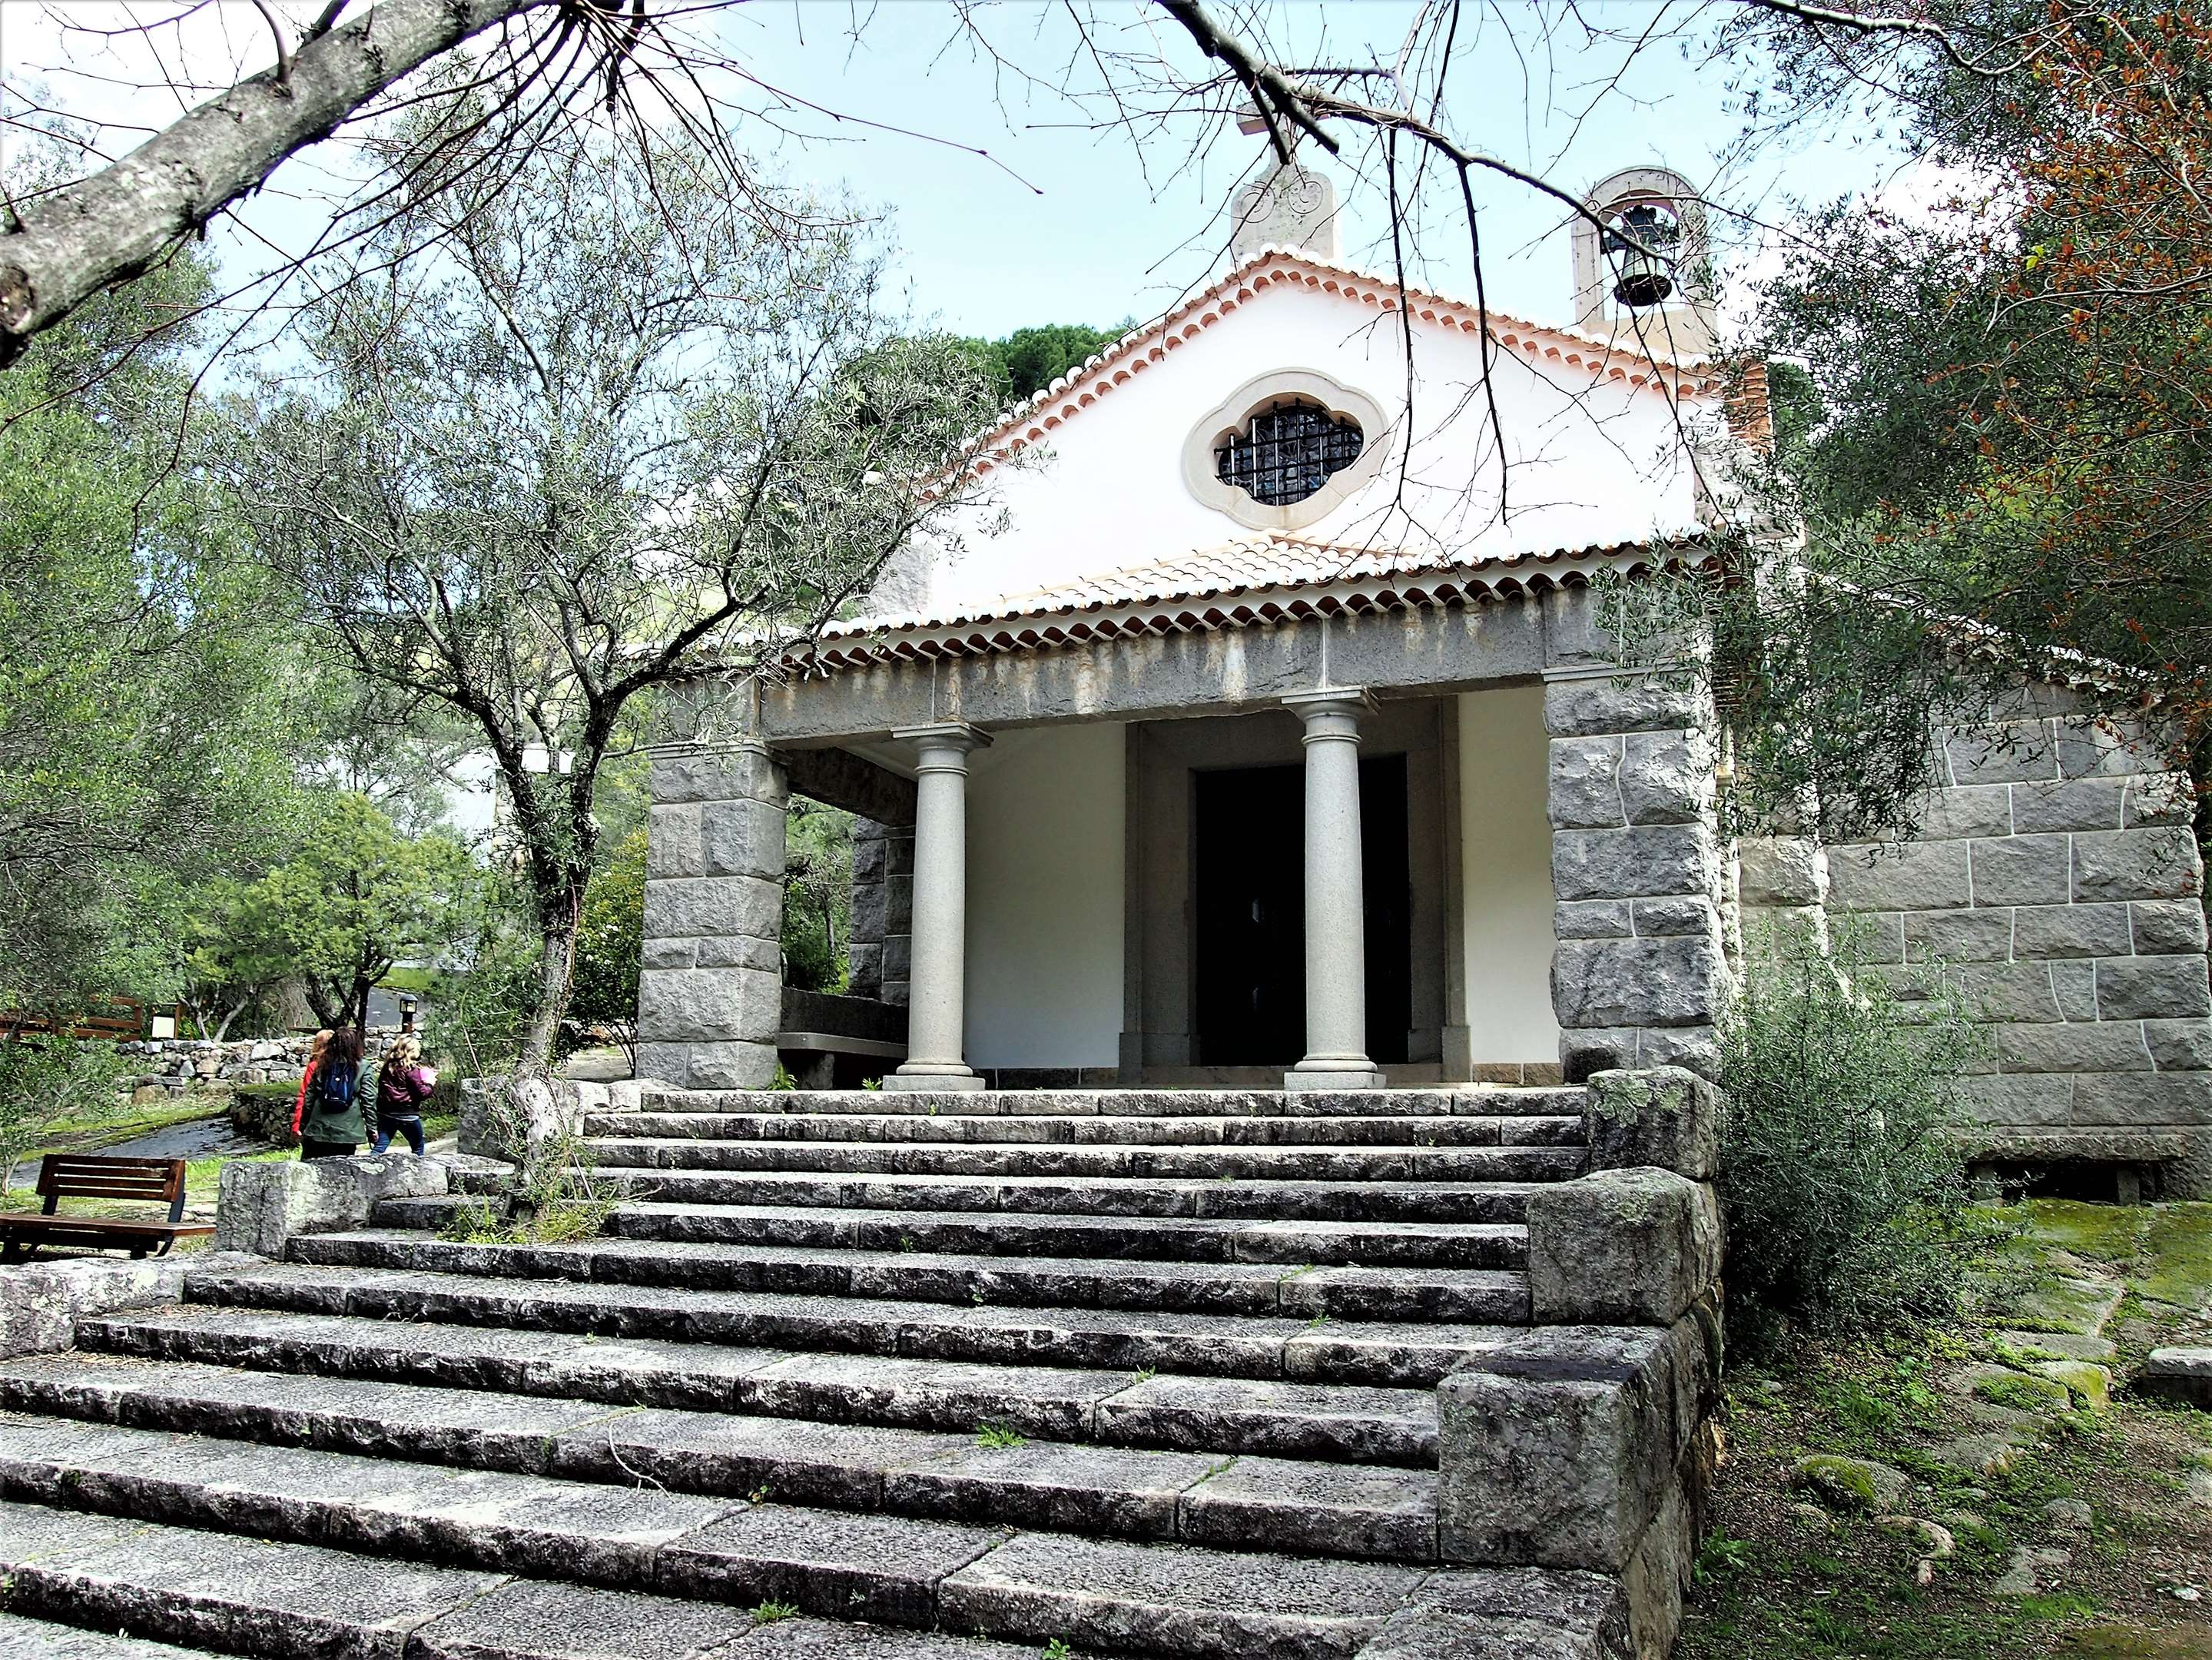 The small church at Caldas de Monchique. Want to get married here?